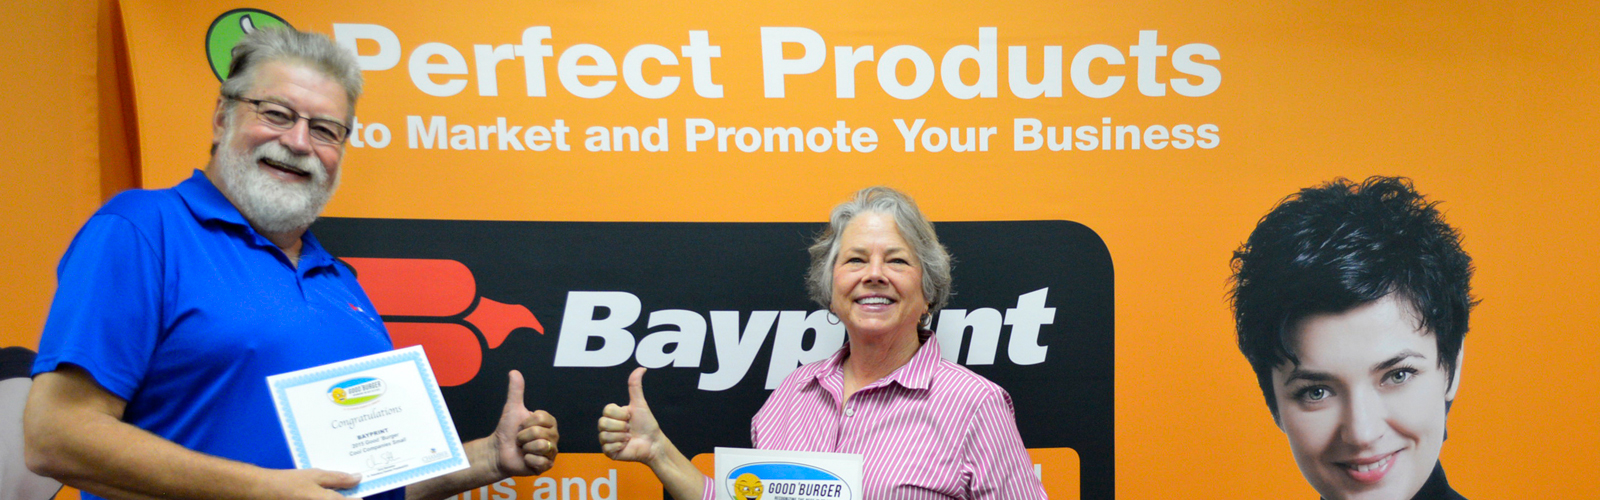 When dependability matters, count on Bayprint